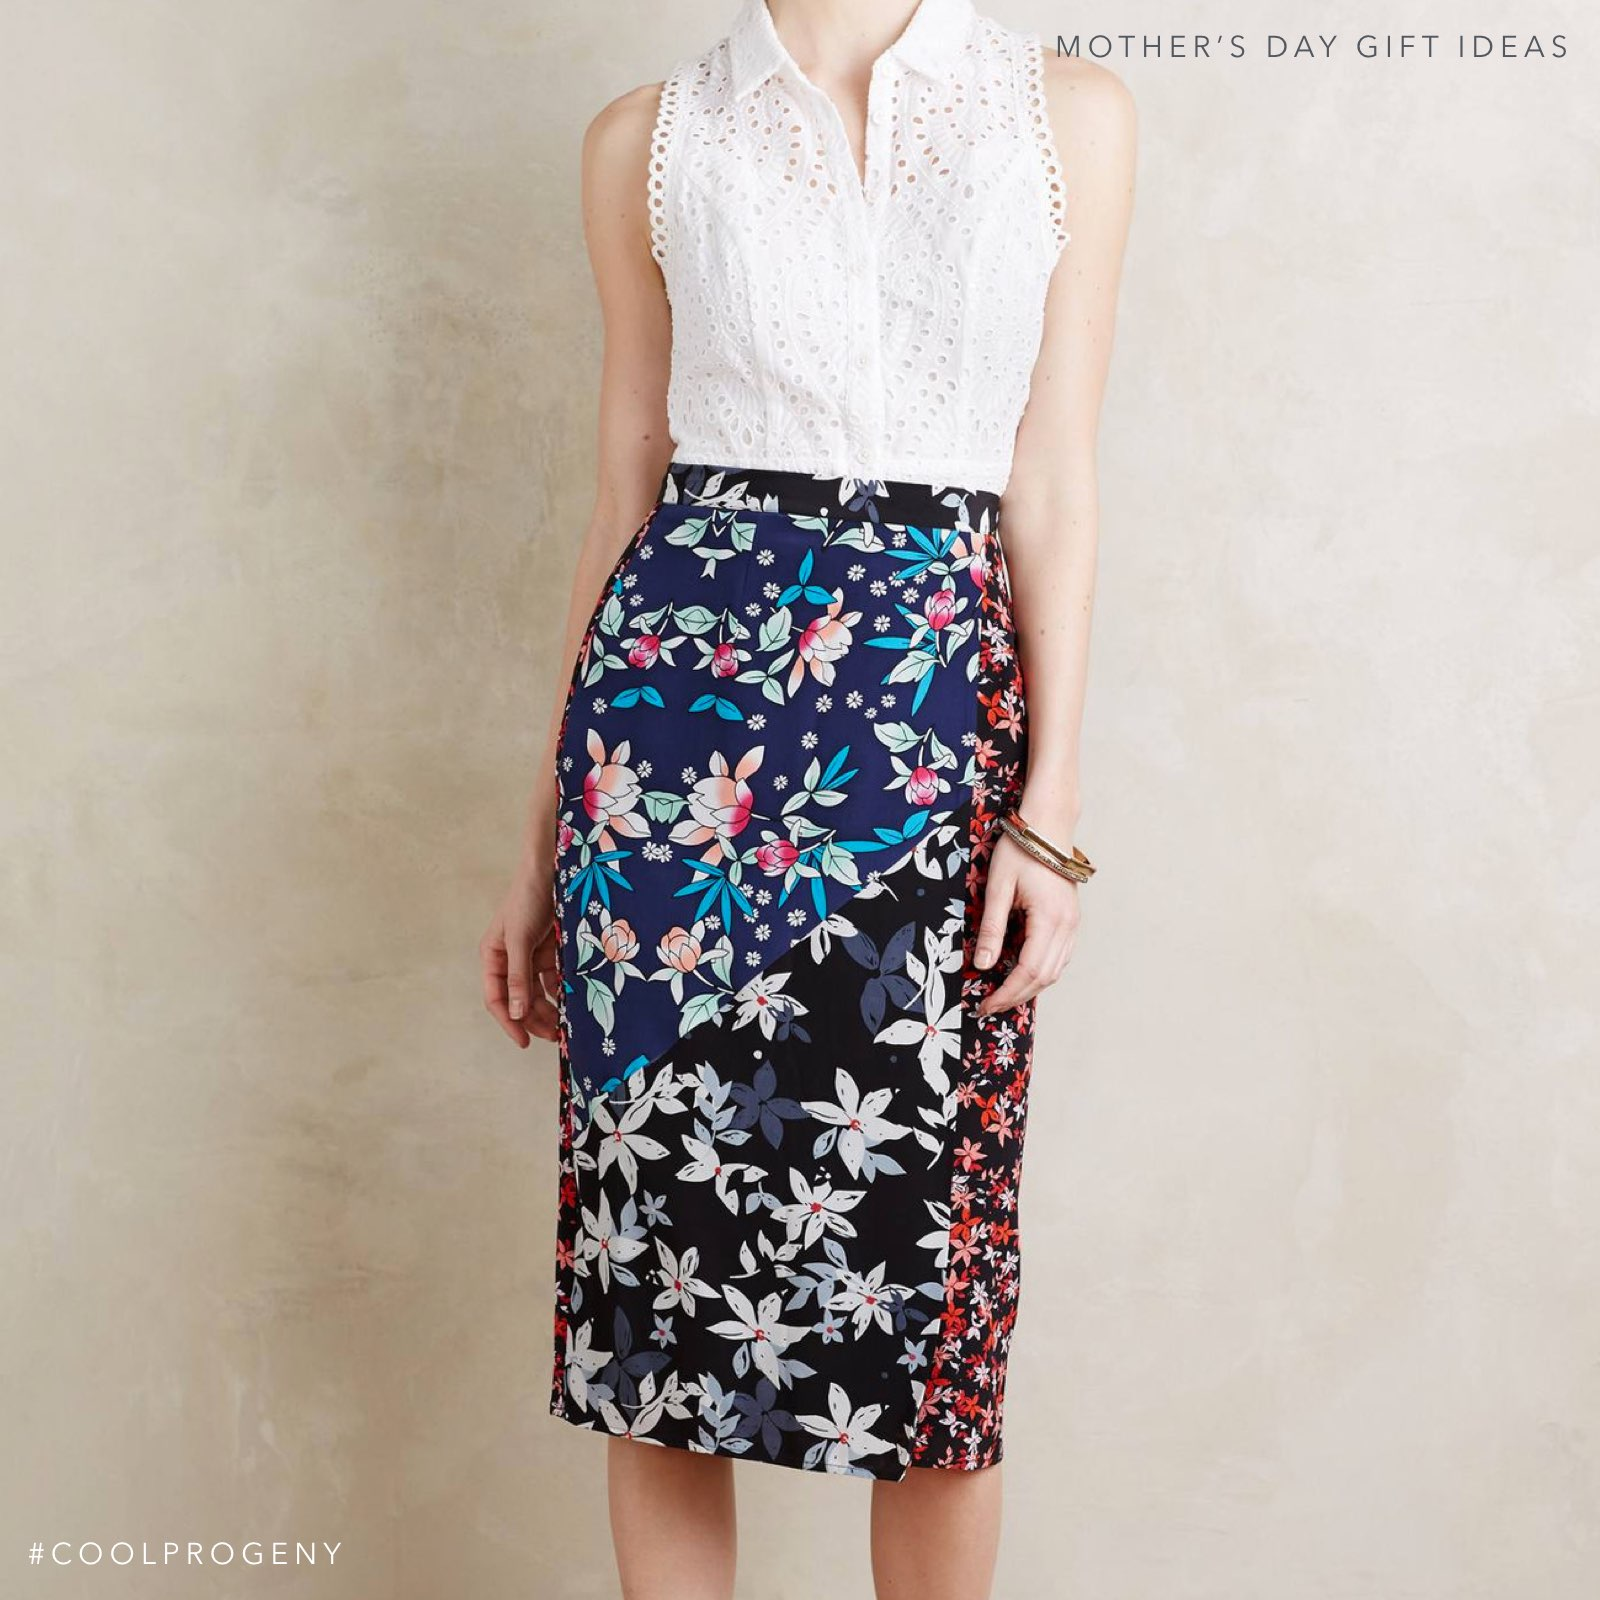 Mother's Day Gift Idea - (cool) progeny - Silk Skirt available from Anthropologie